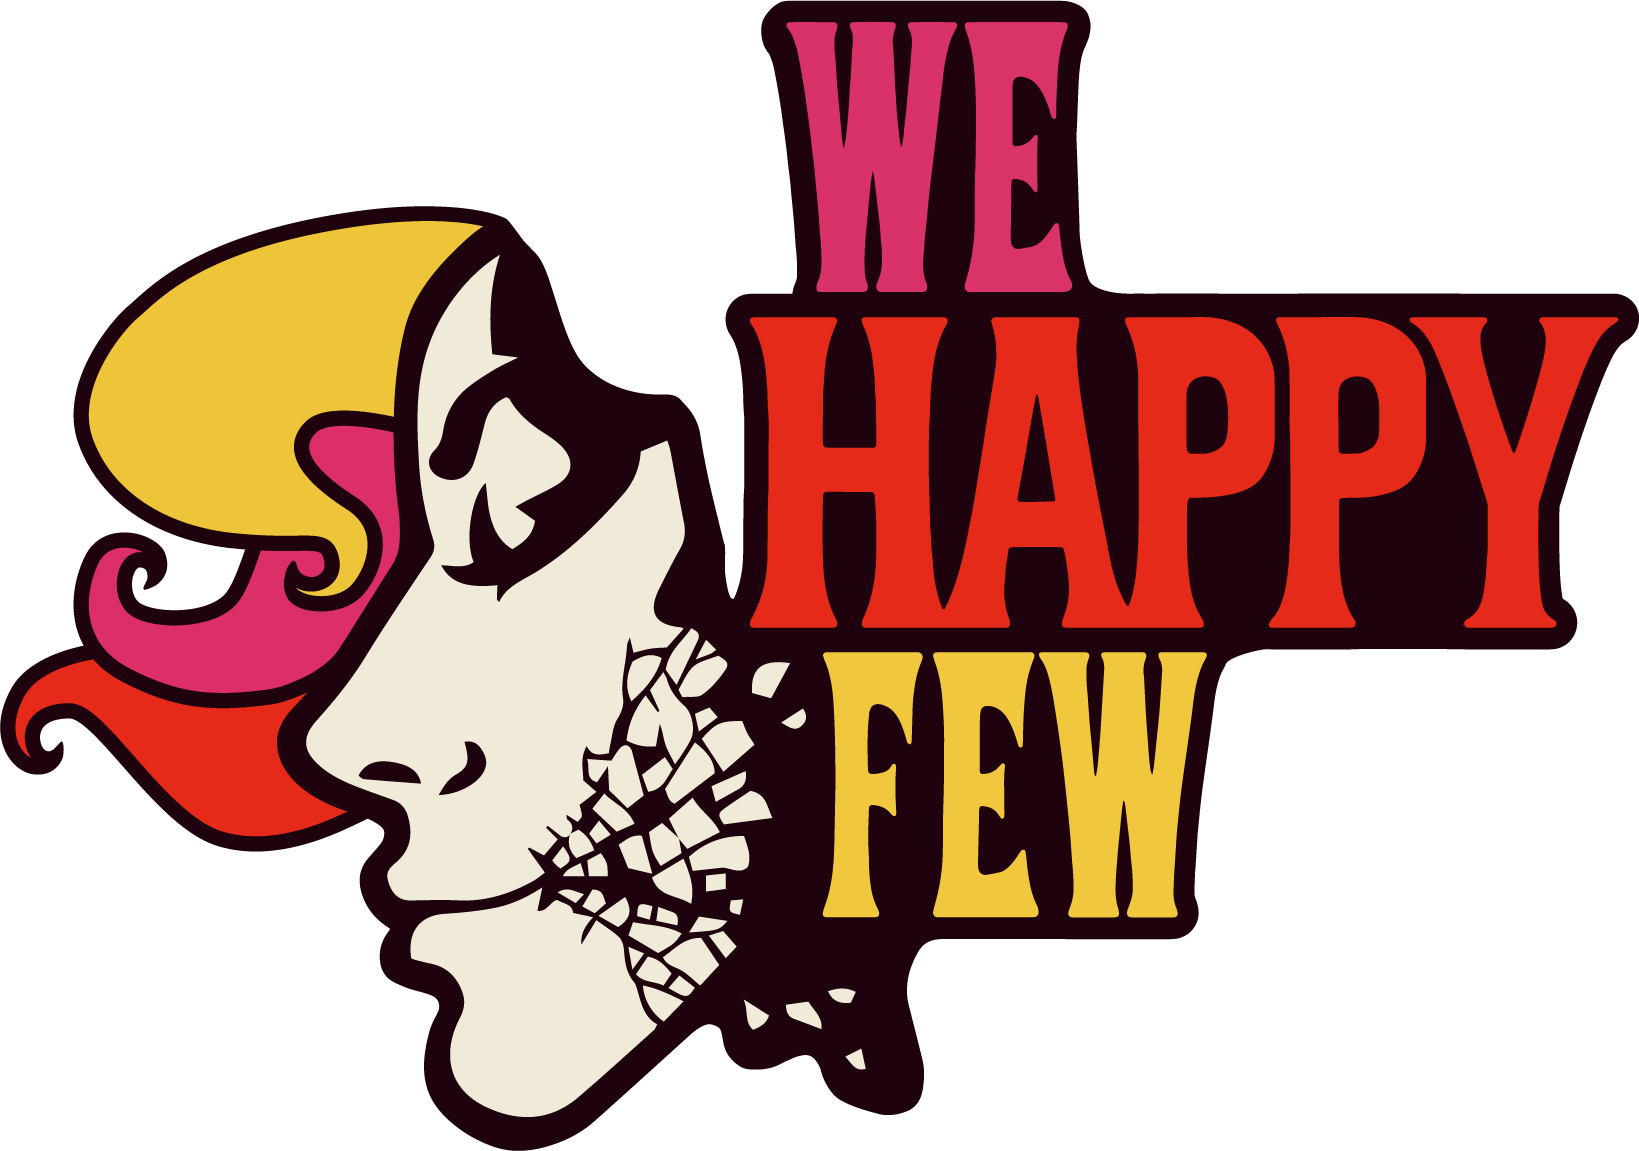 Excited clipart cheerful. We happy few details